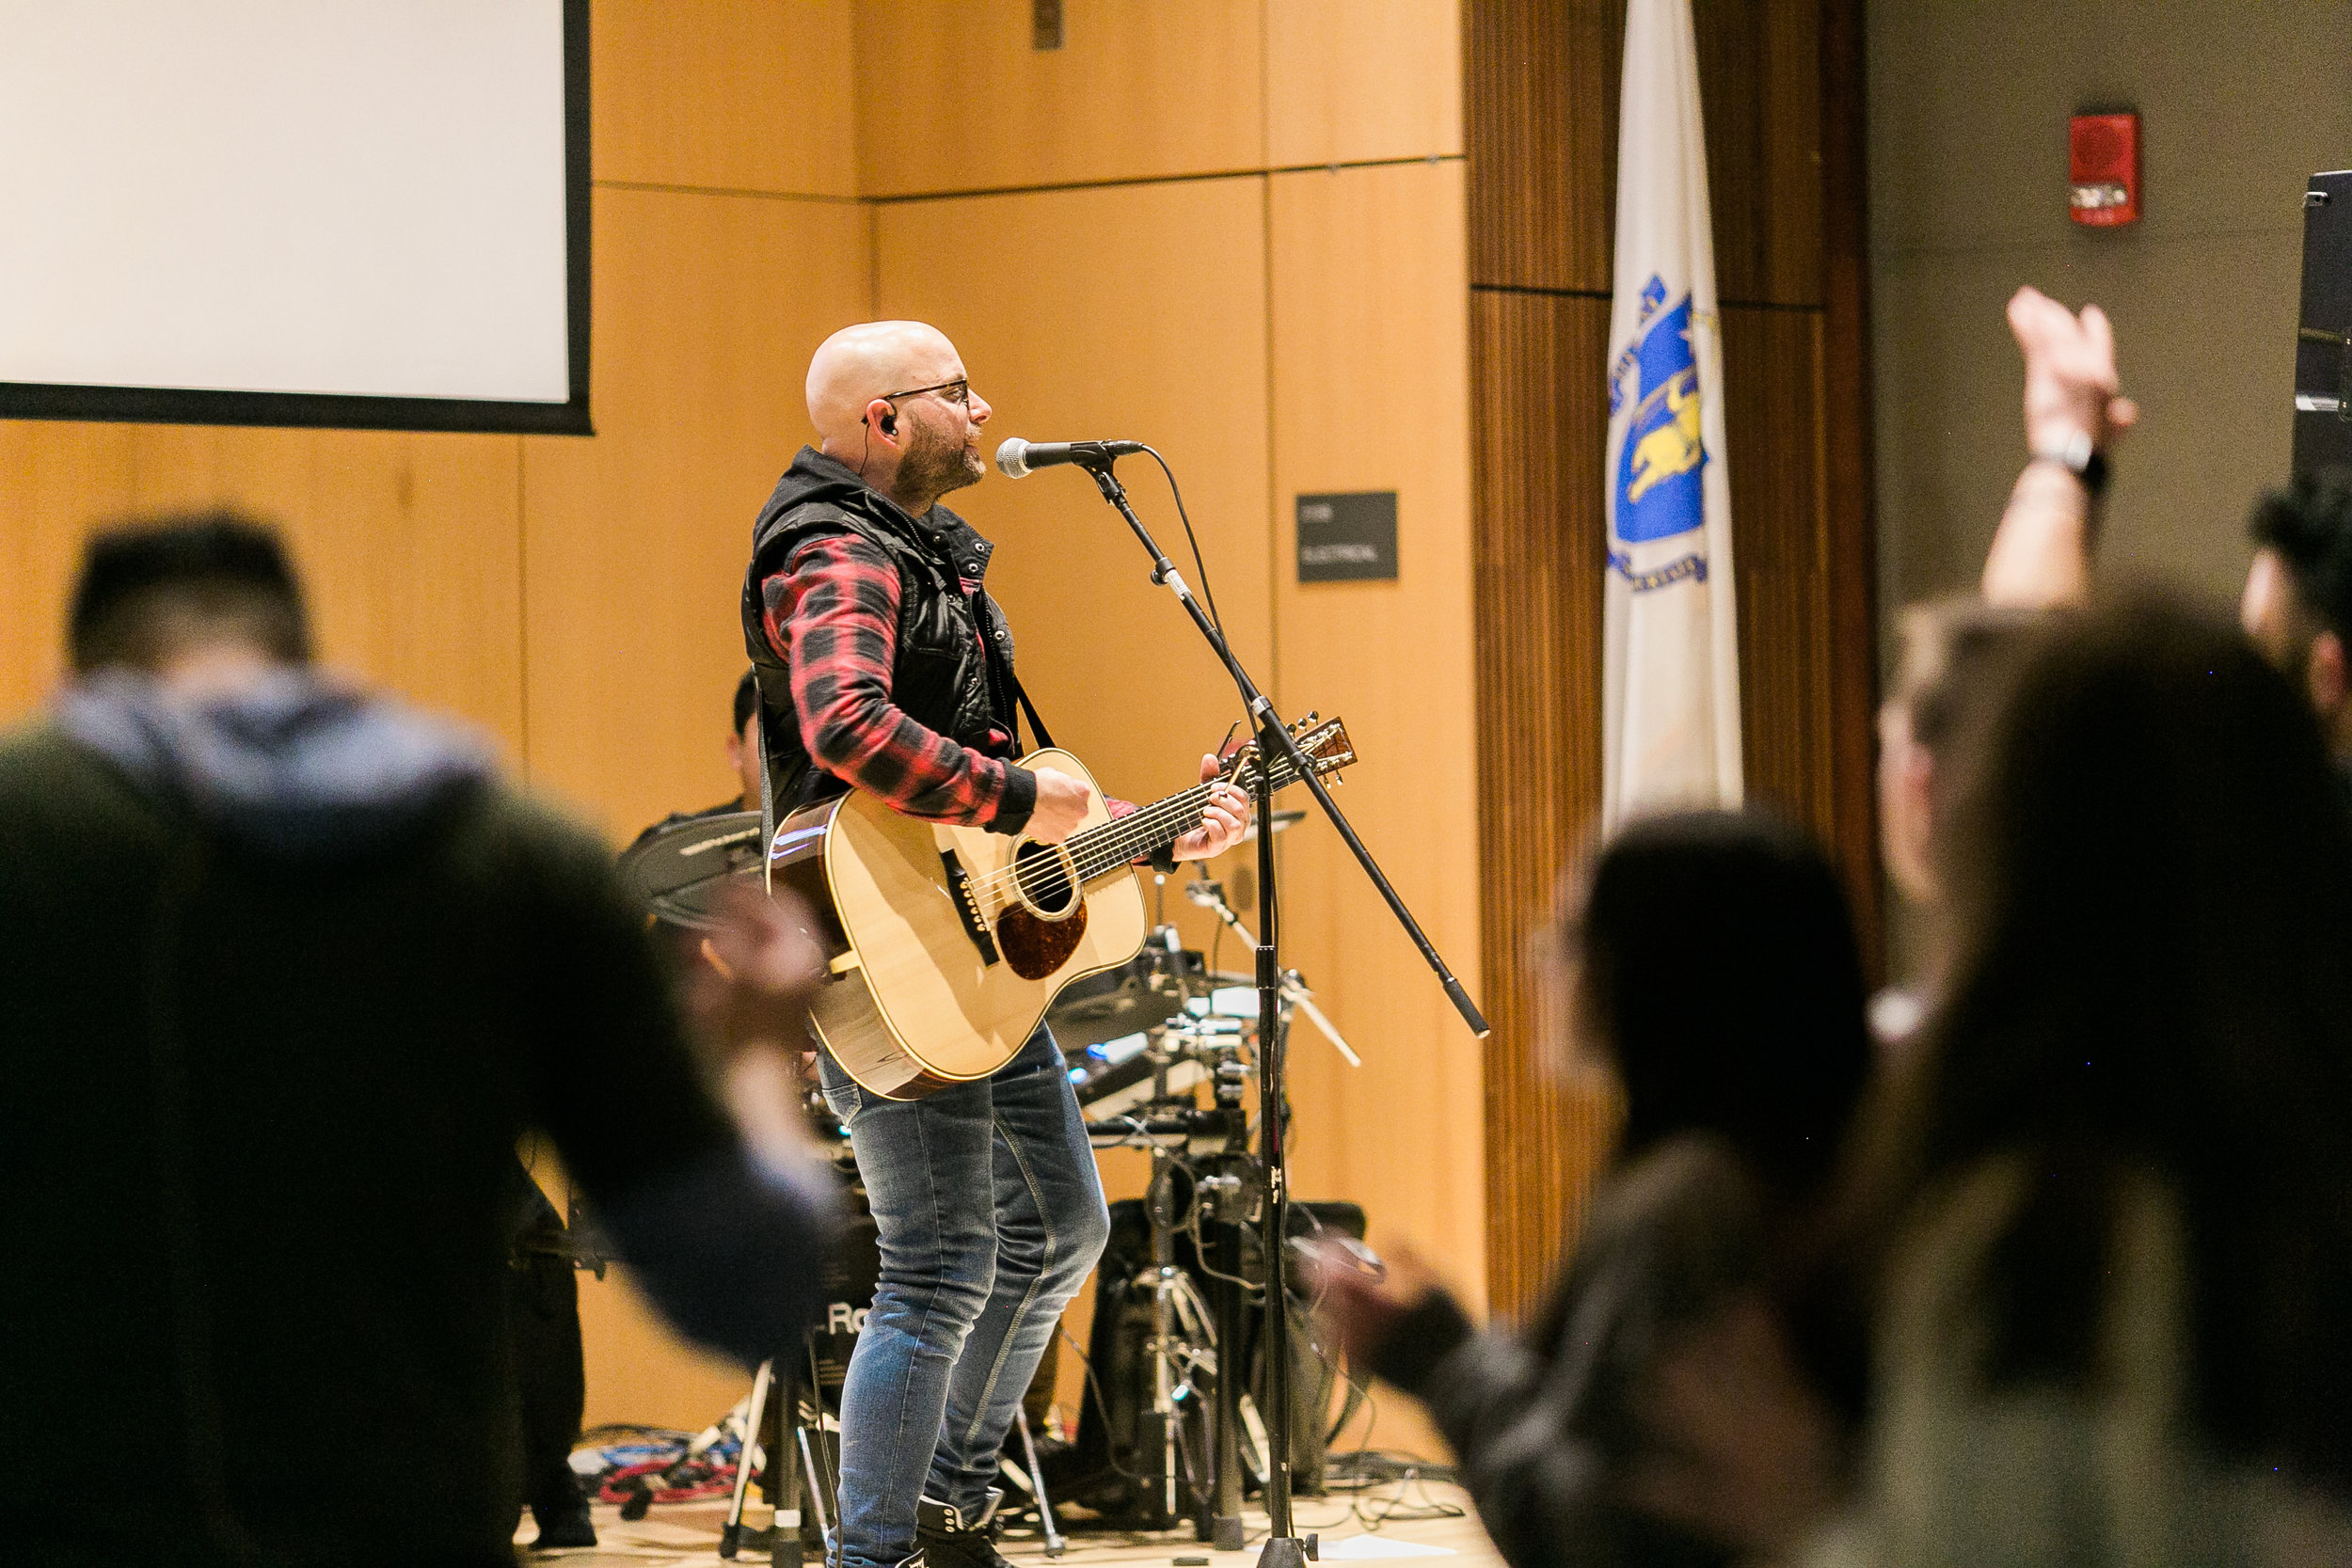 THE MUSIC - Music has always been a powerful part of the Christian faith. An important part of every gathering is dedicated to singing the truths of the Christian faith in a modern way. About 25 minutes of our gathering you will hear songs of faith.FOLLOW OUR SPOTIFY PLAYLIST